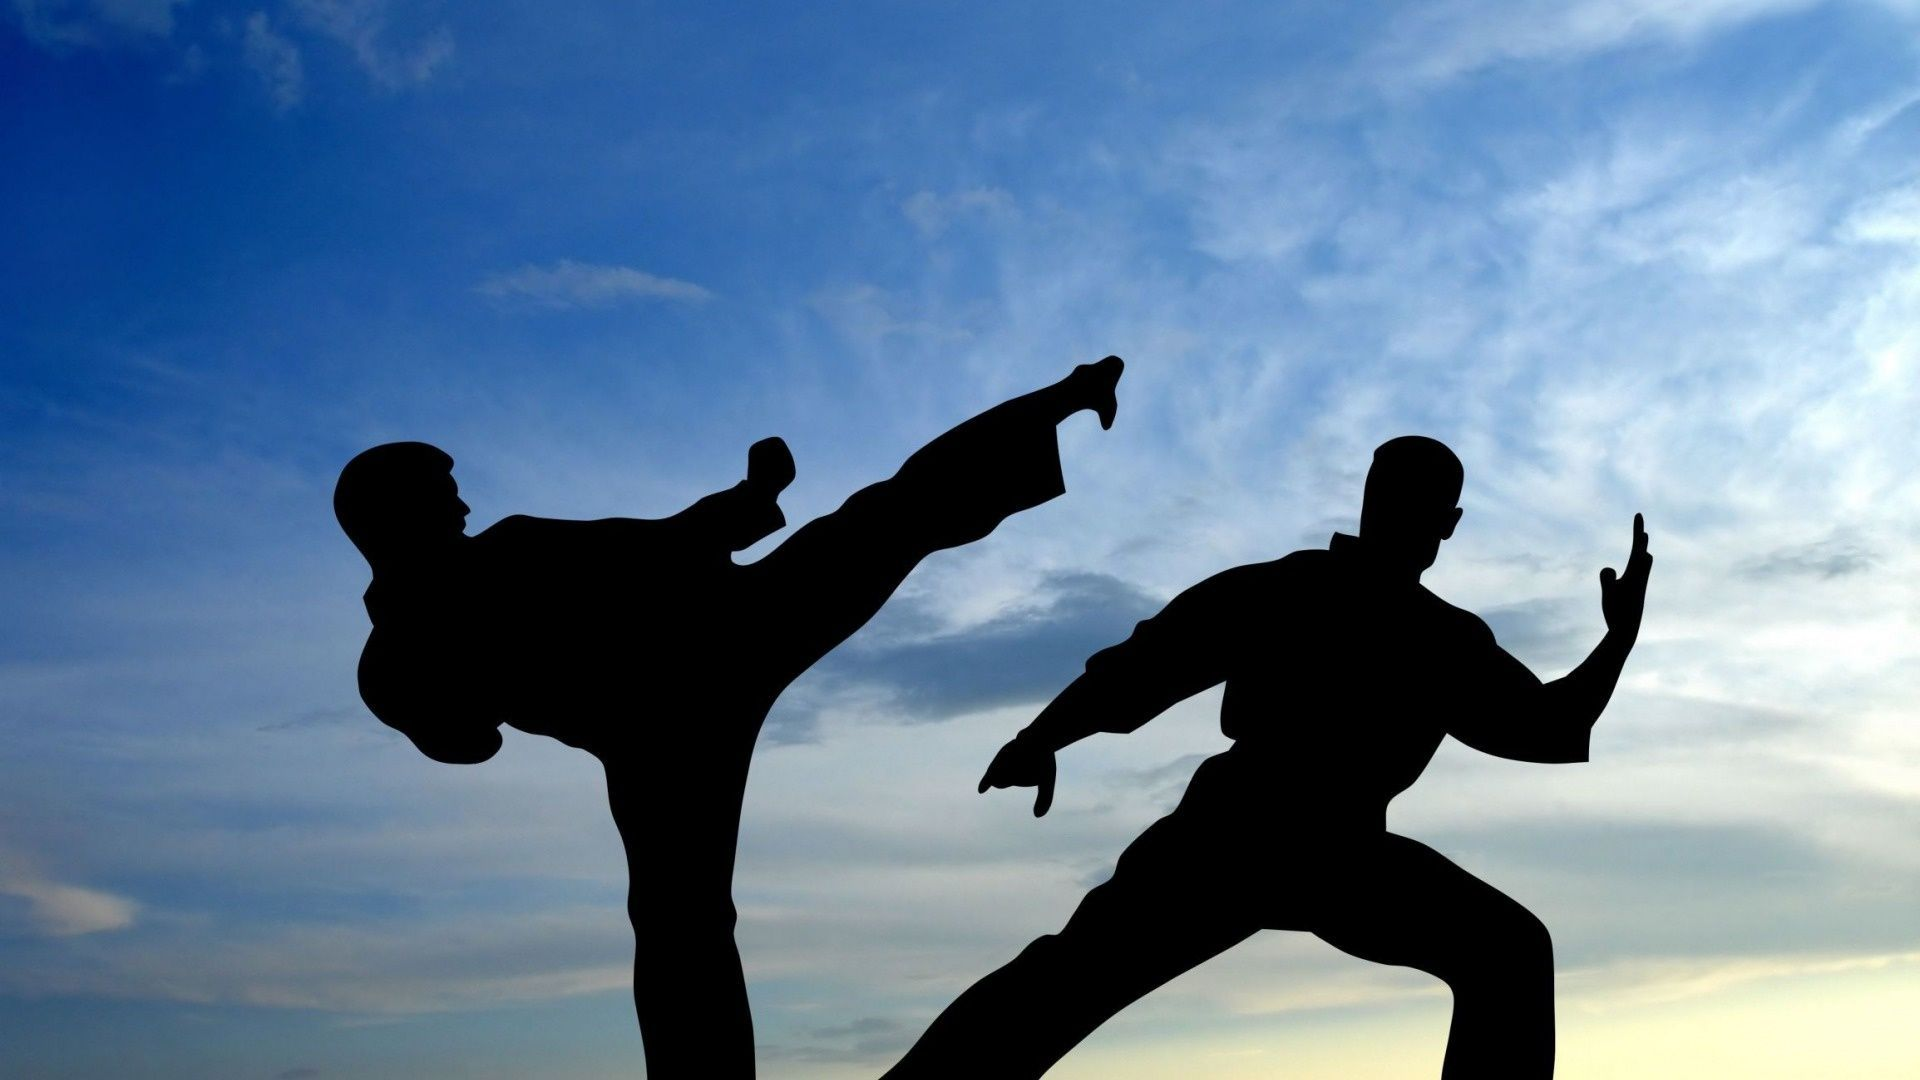 Martial Arts Wallpapers Top Free Martial Arts Backgrounds